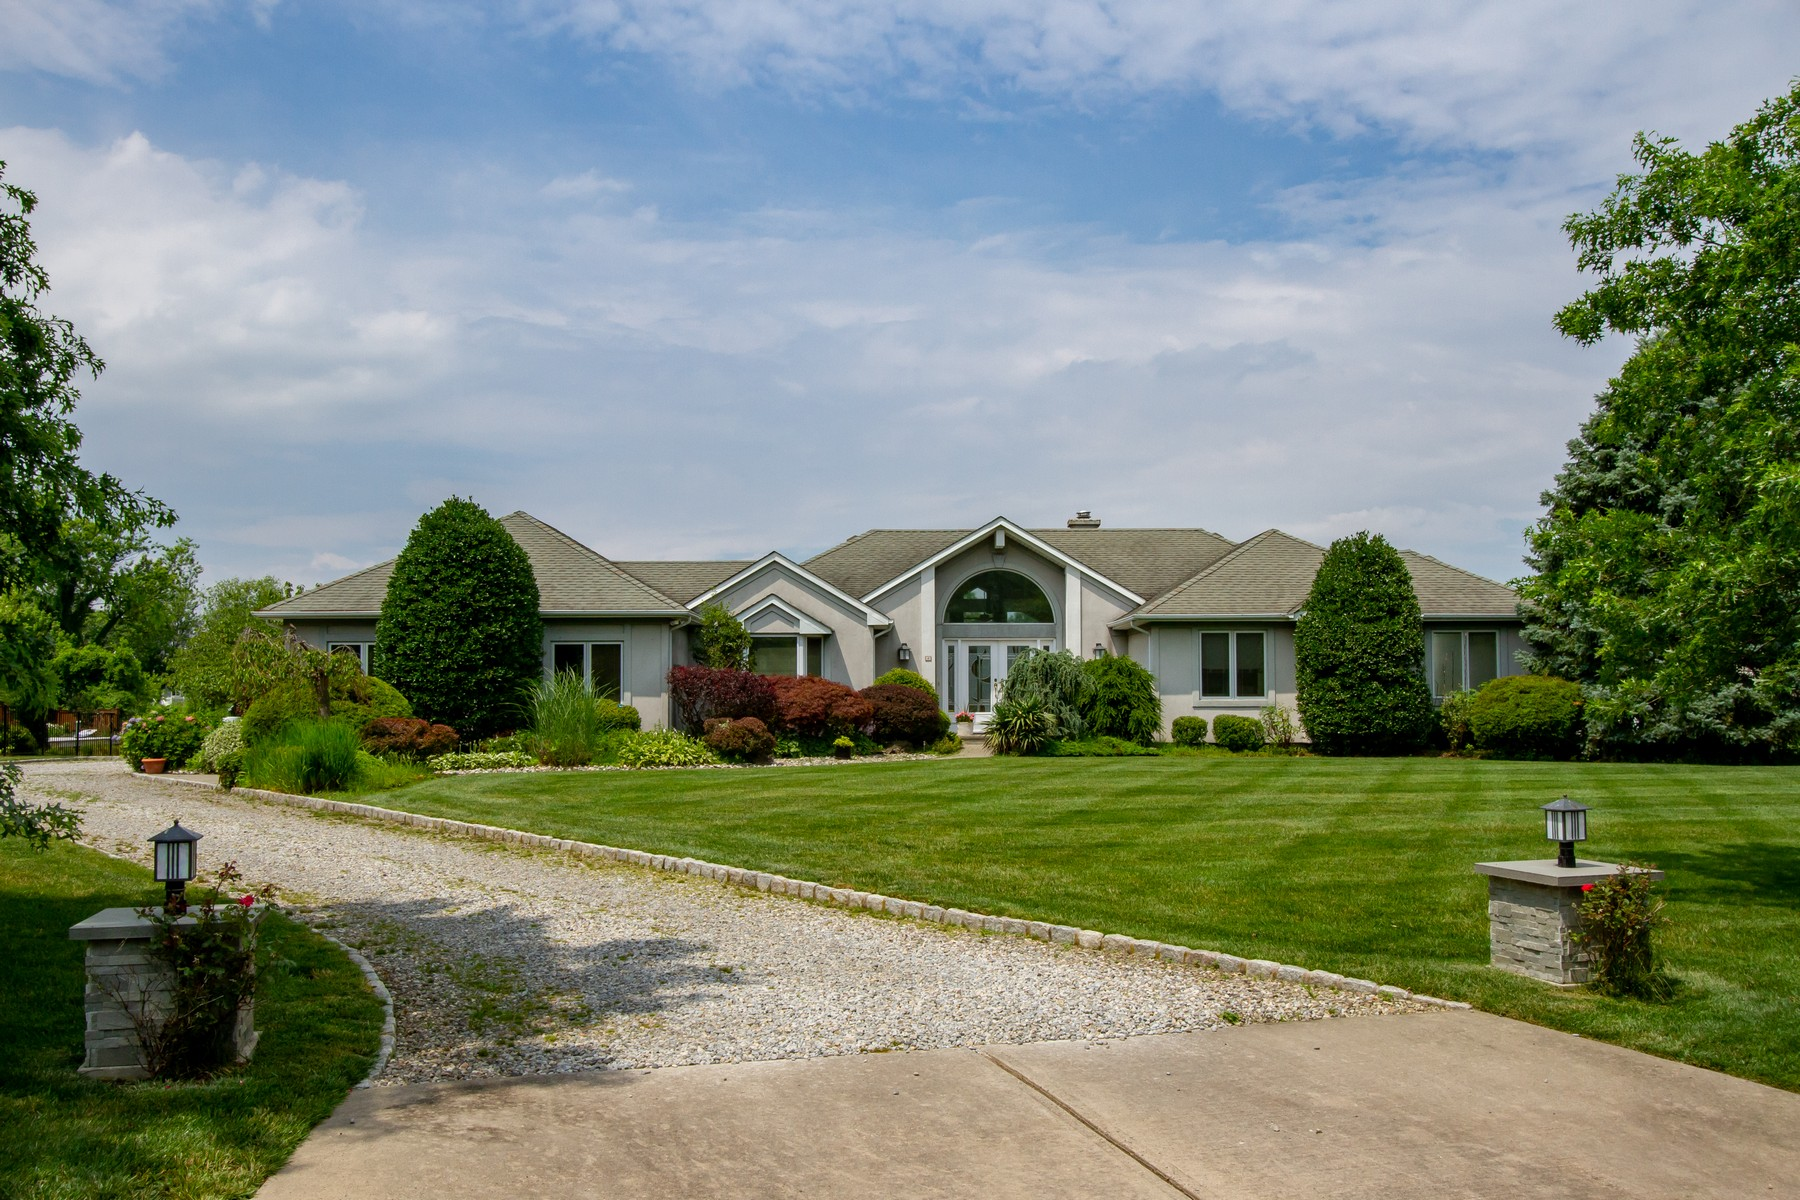 Single Family Homes for Sale at LIVE ON THE WATER 4 Blue Point Cv Oceanport, New Jersey 07757 United States